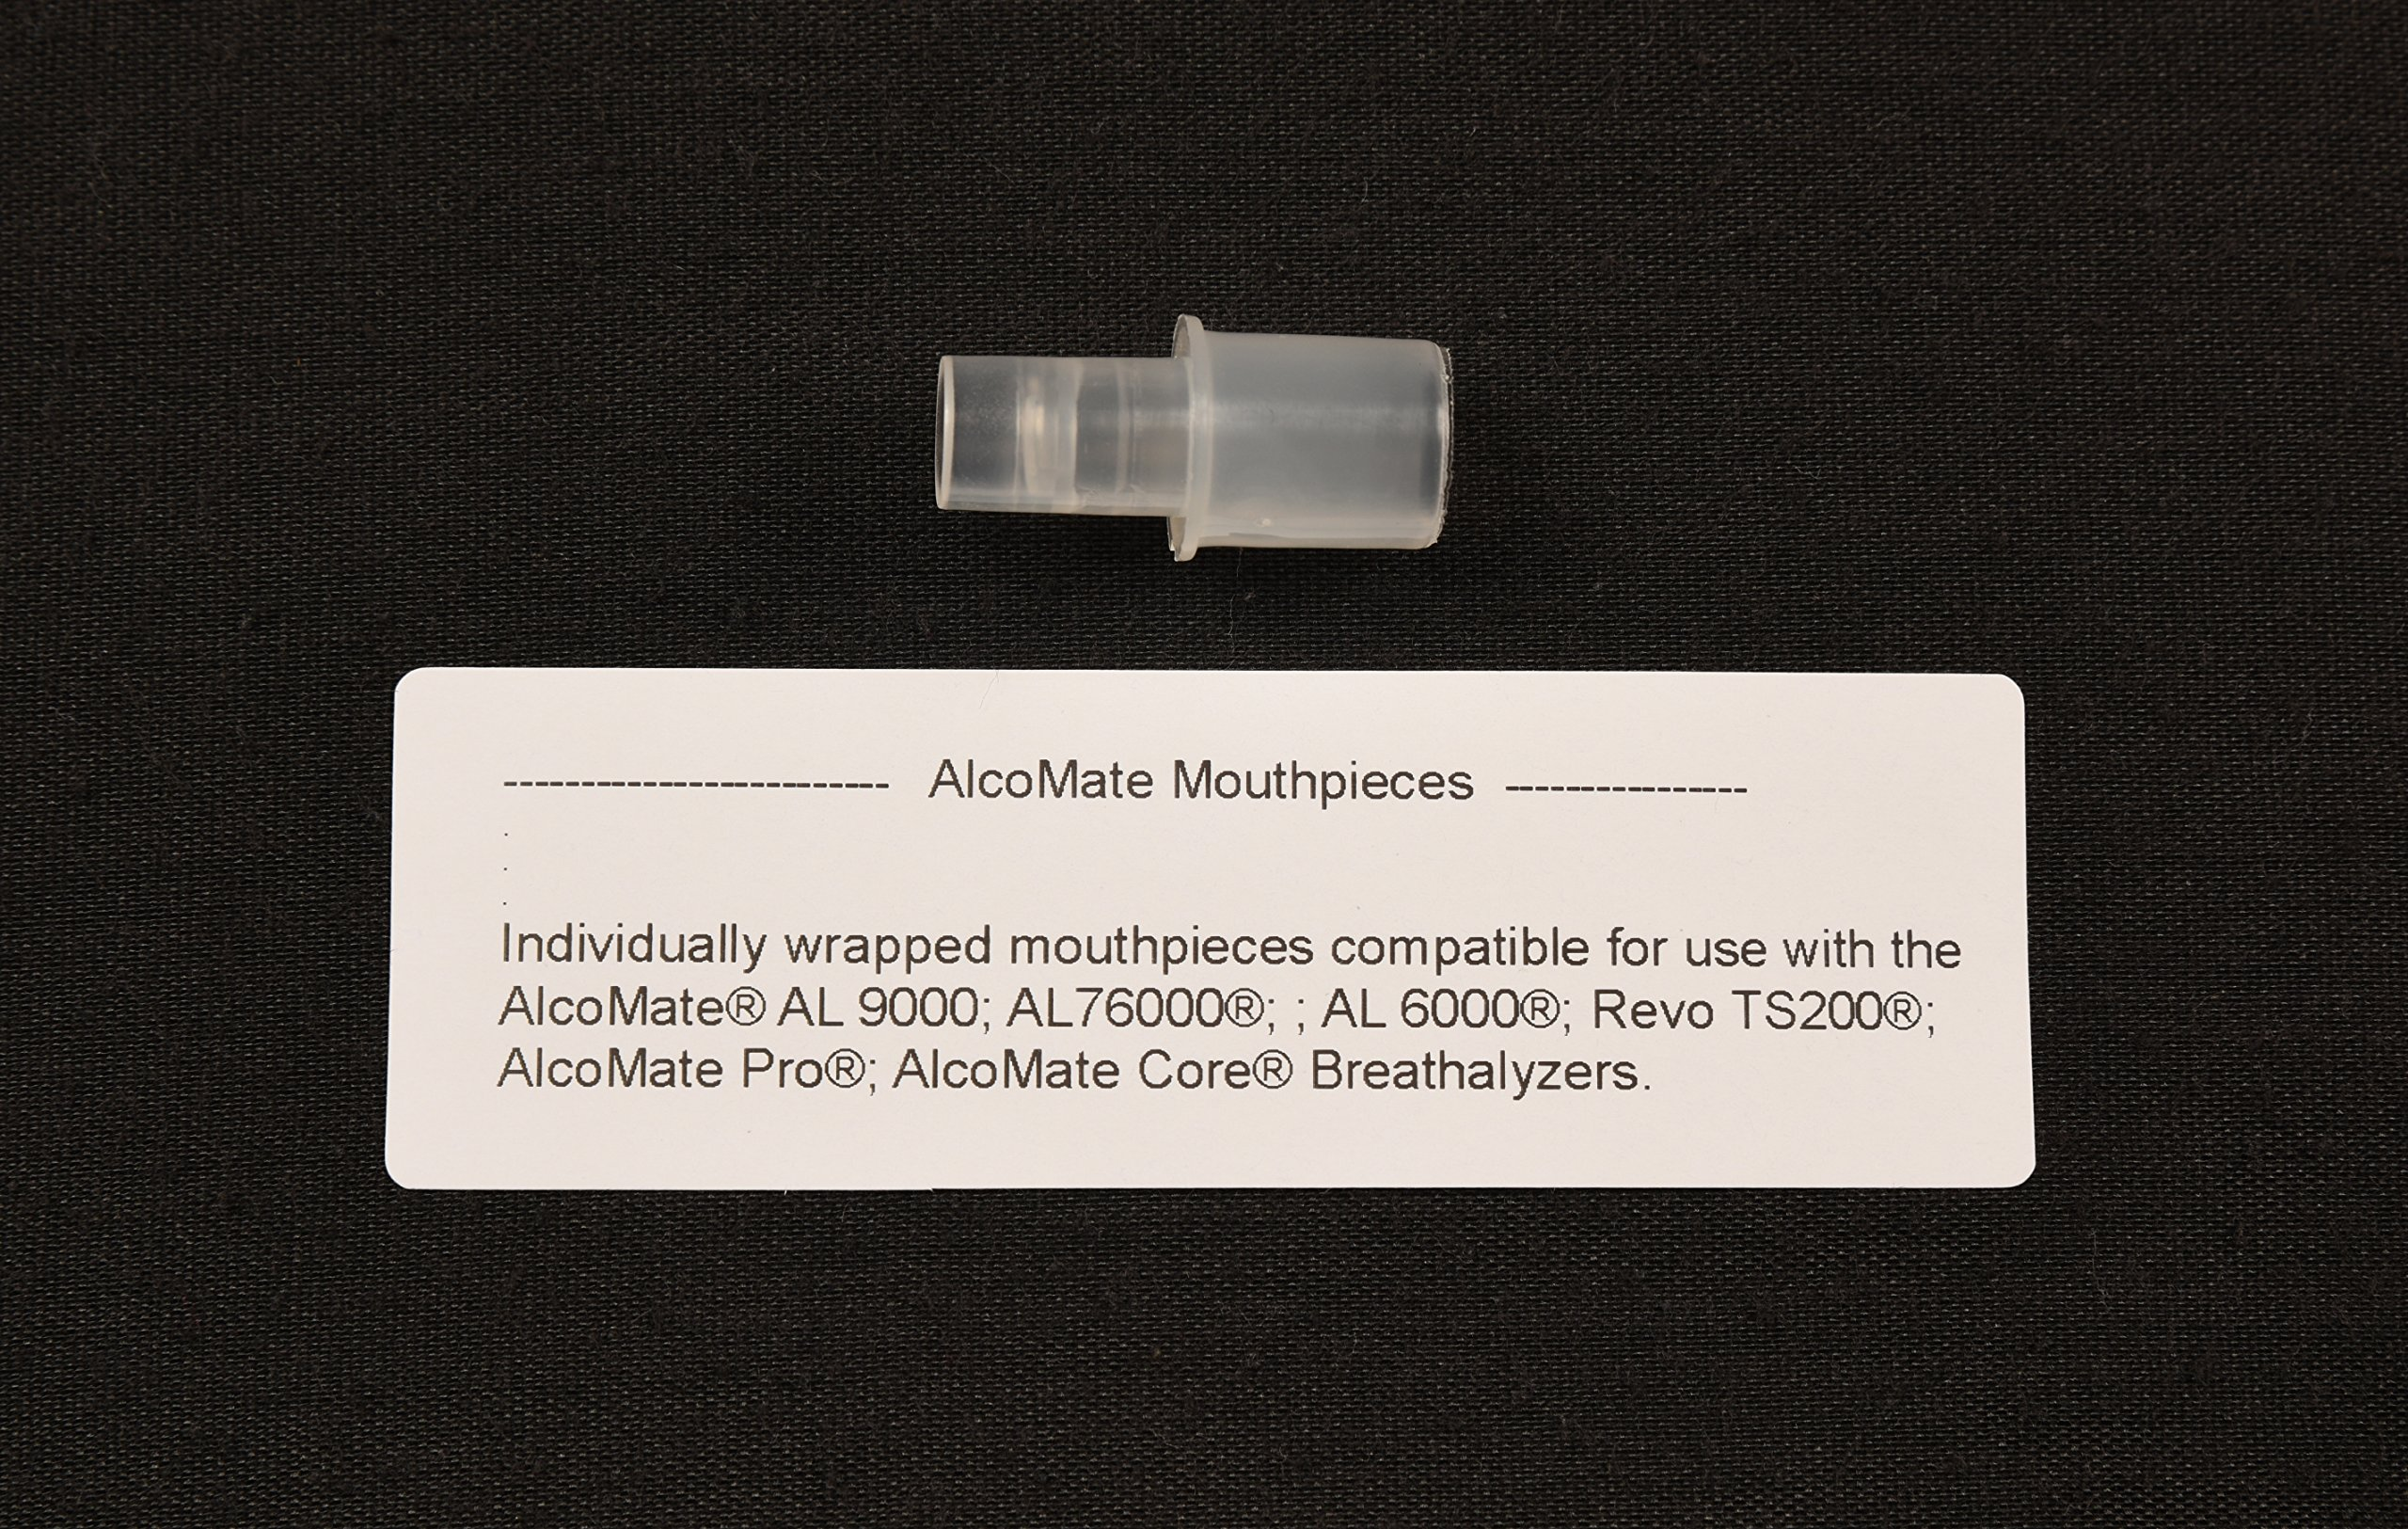 AL6000 Premium AlcoMate Professional Core Breathalyzer 150 Plastic Mouthpieces Breath Alcohol Testing by AlcoMate (Image #3)